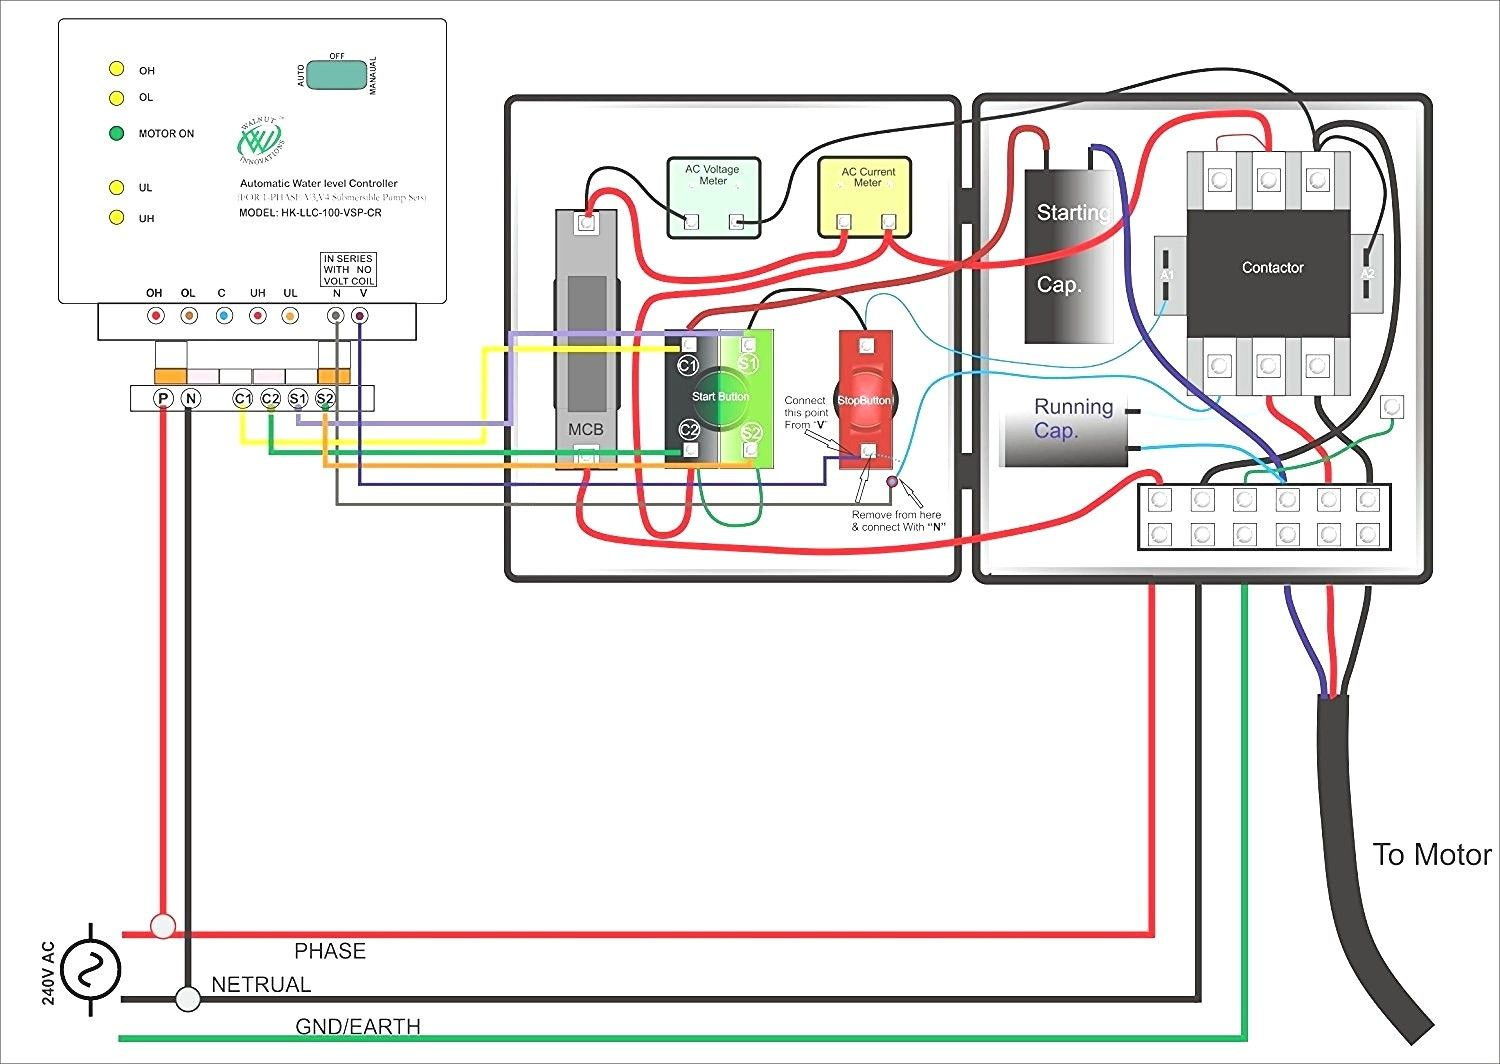 small resolution of wiring control box for deep well pump wiring diagram view franklin electric well pump control box wiring diagram pump control box wiring diagram